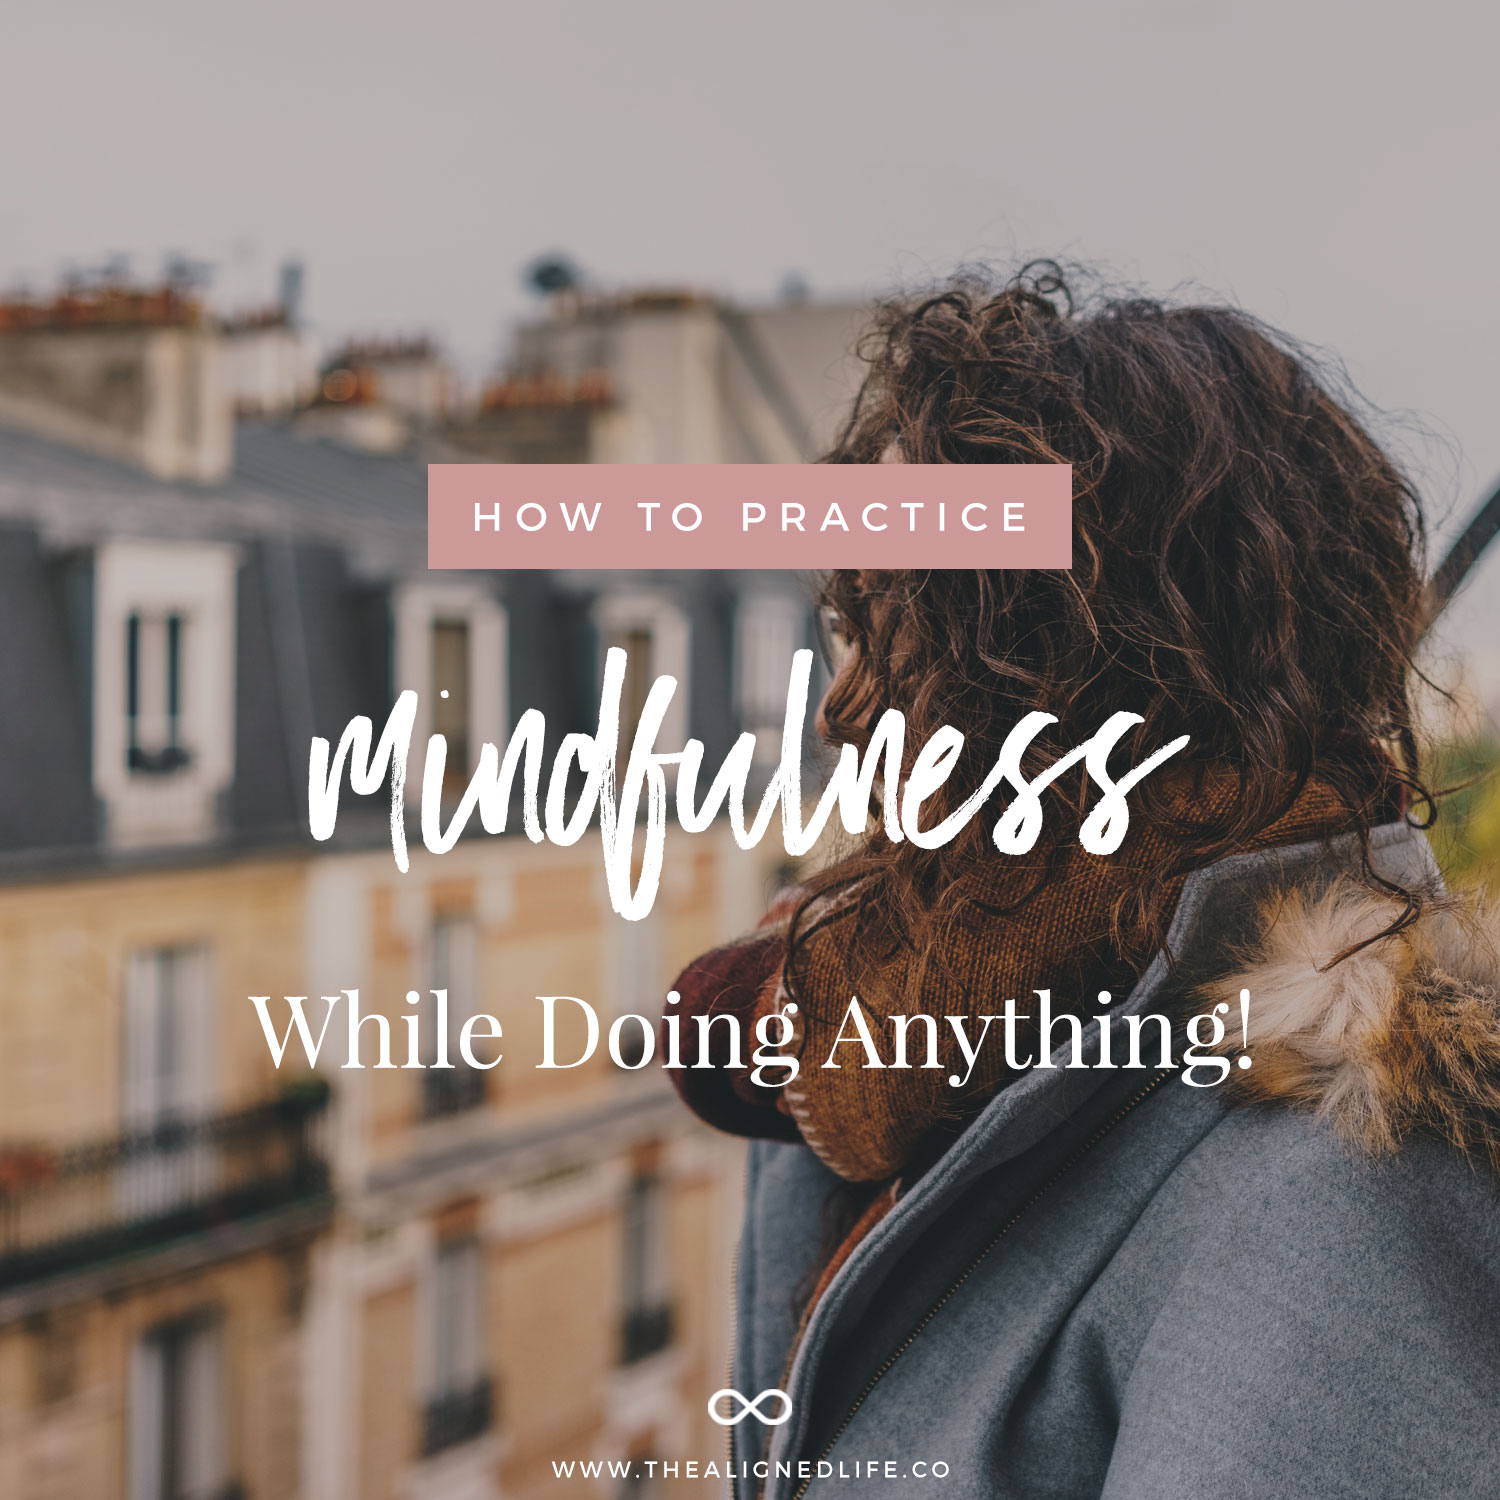 How To Practice Mindfulness While Doing Anything